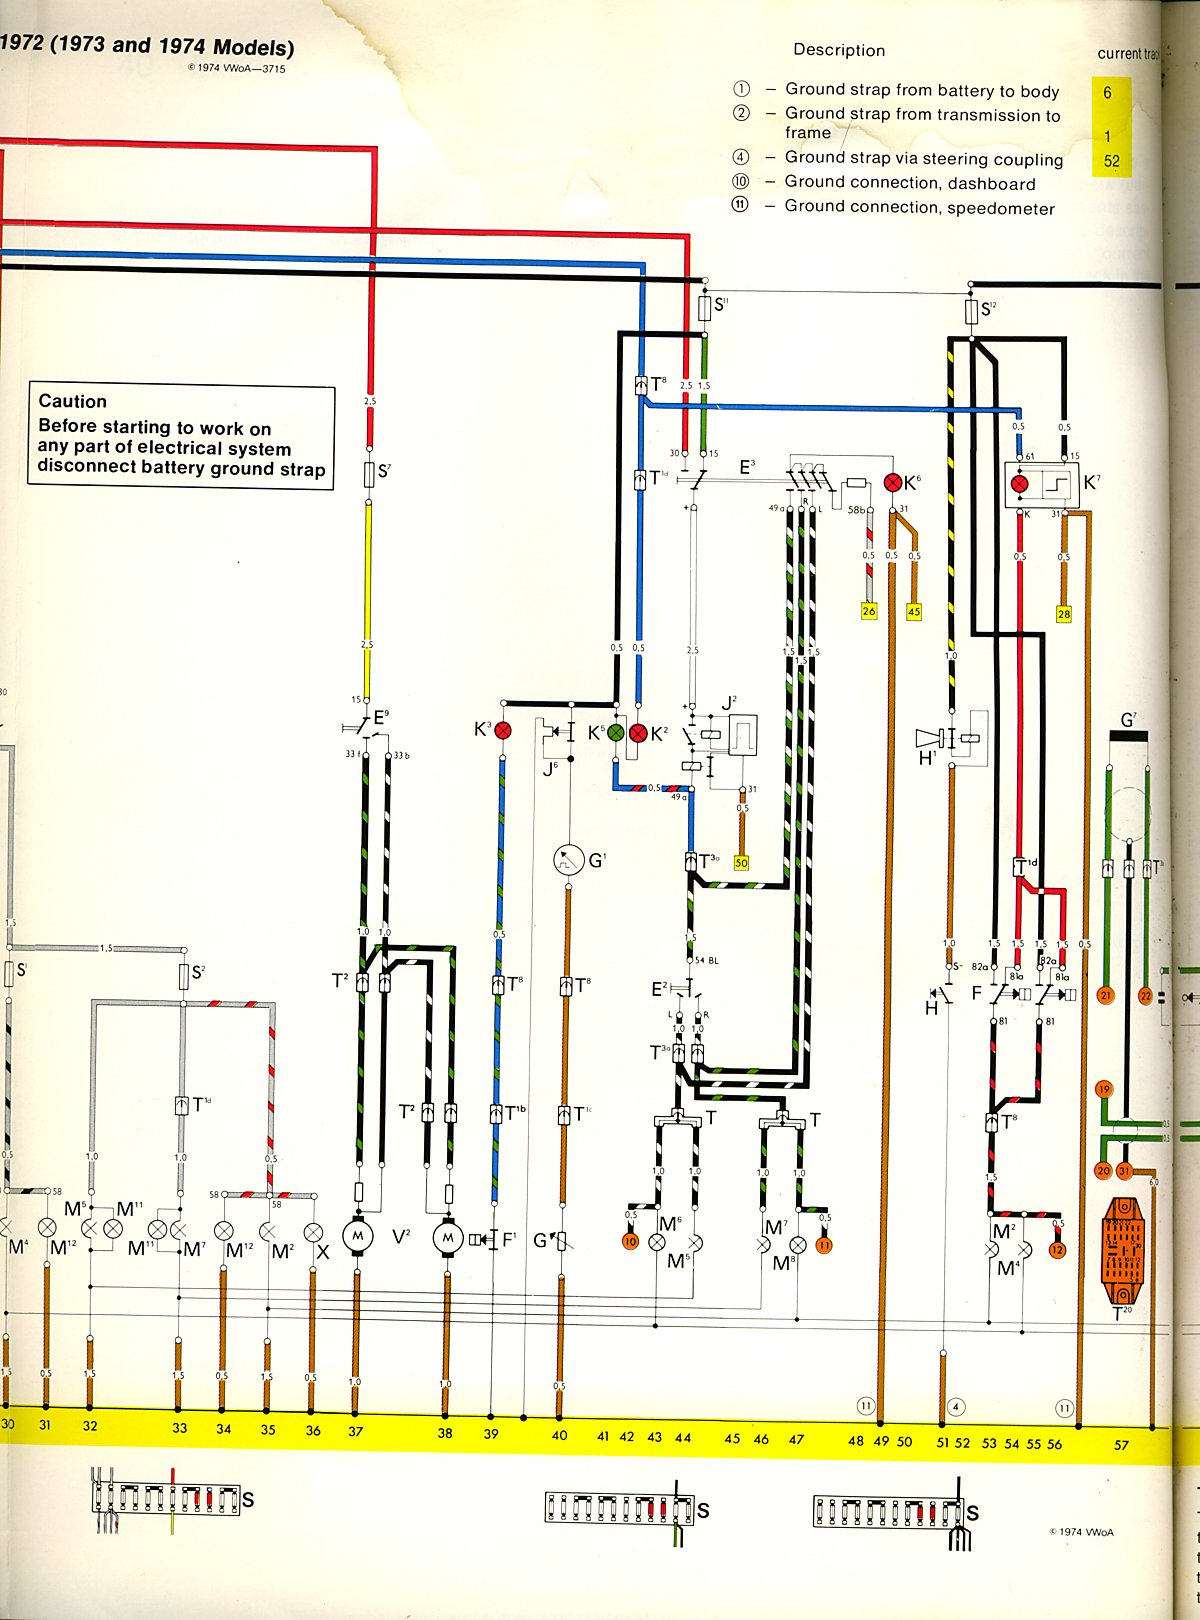 74 bug wiring schematics 74 vw wiring diagram 1973-74 bus wiring diagram | thegoldenbug.com